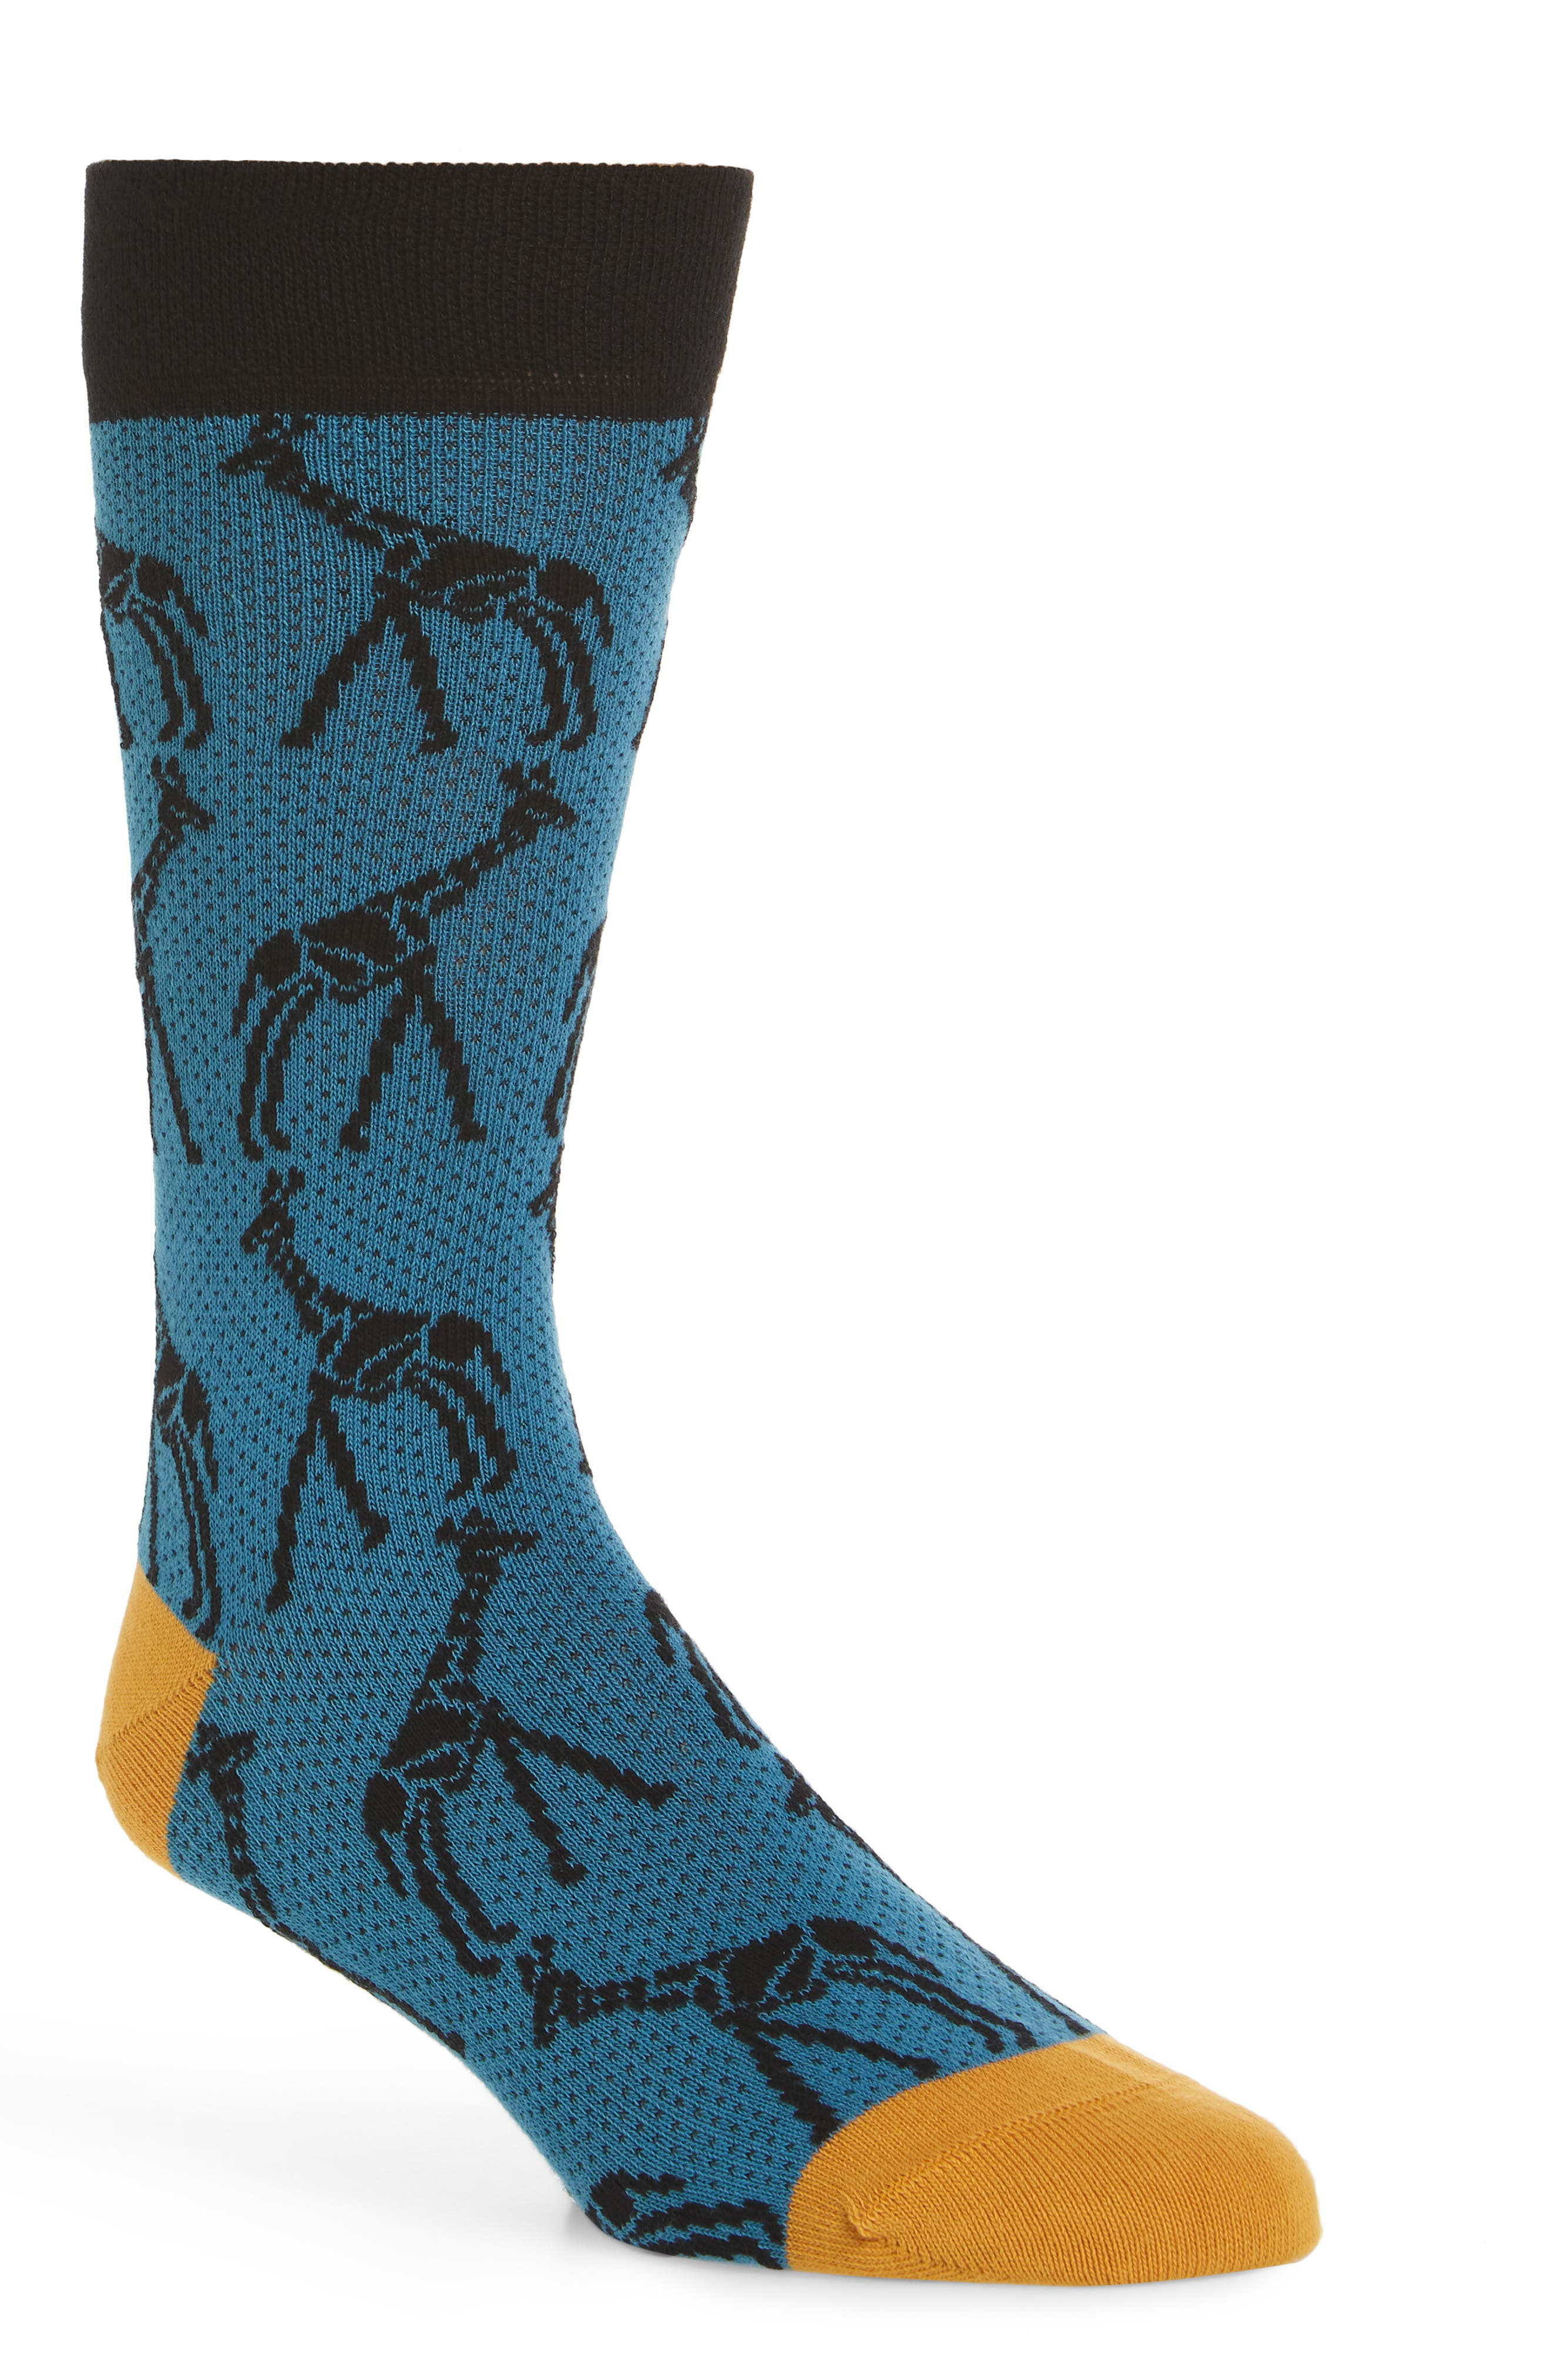 Giraffe Print Socks,                             Main thumbnail 1, color,                             430